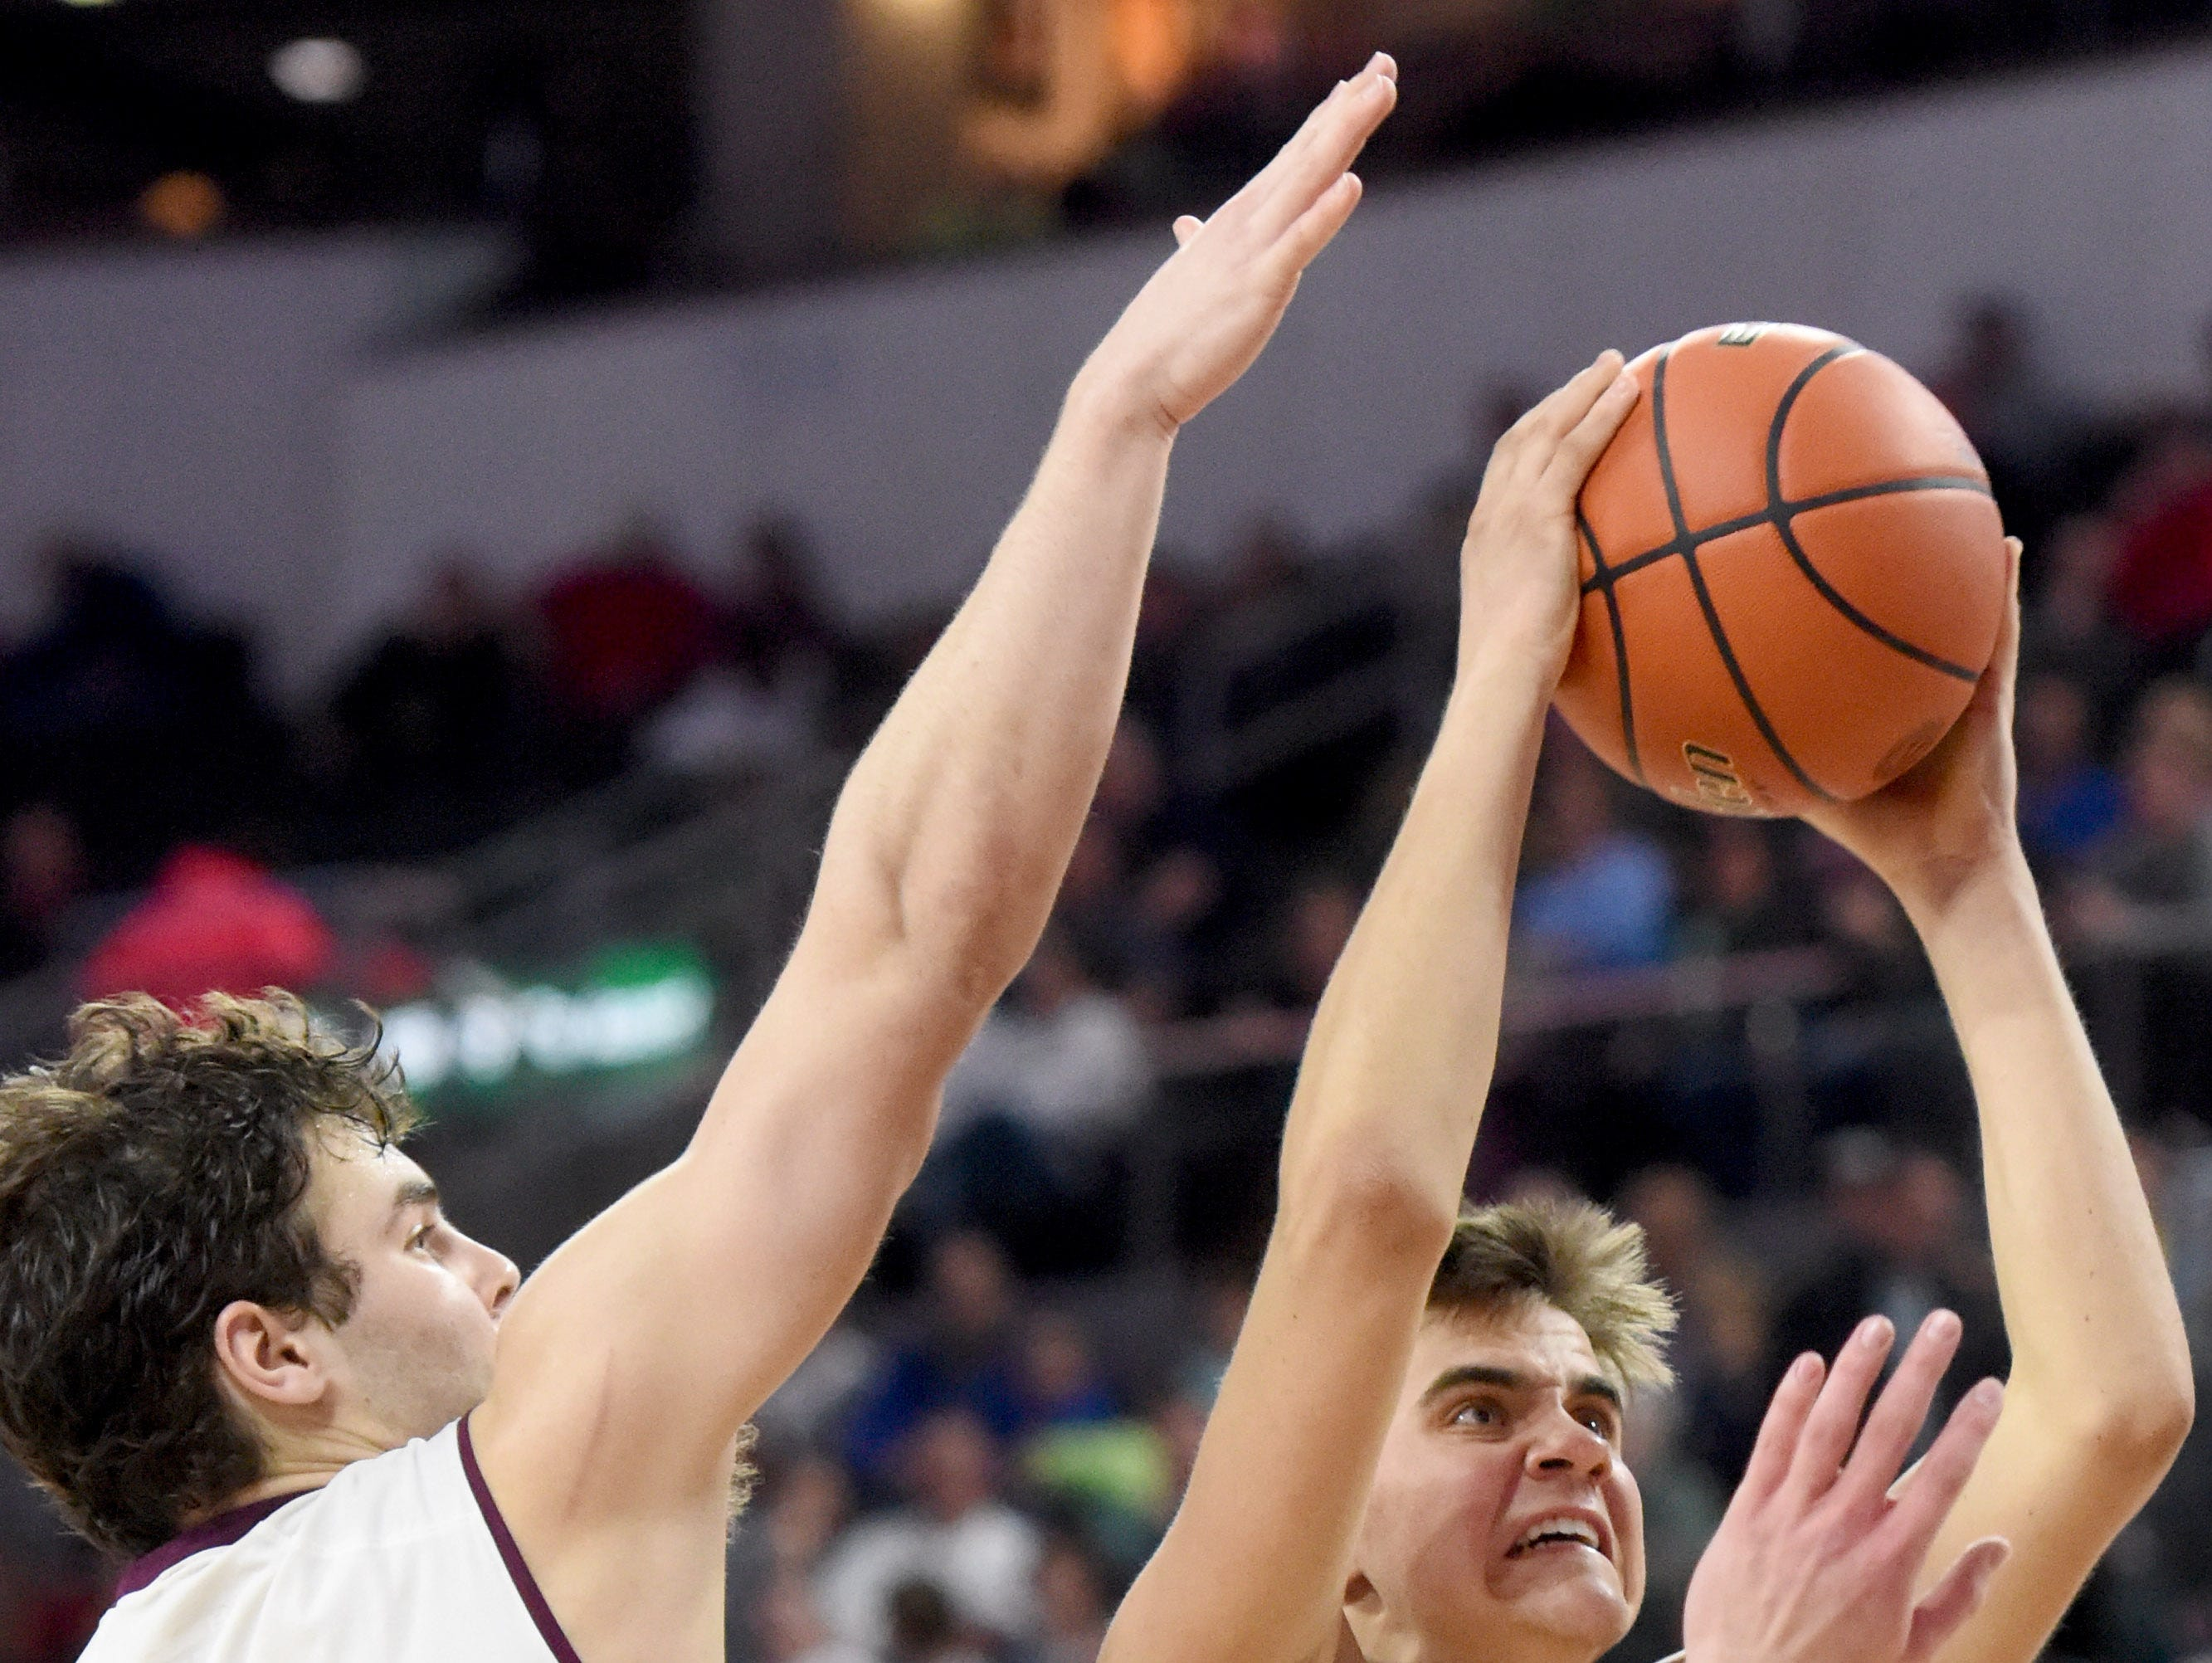 Sioux Falls Chrsitian's Koln Oppold goes up for a shot while Madison's Marcus VandenBosch defends during the 2017 SDHSAA Class A boy's basketball semifinals at the Denny Sanford Premier Center on Friday, March 17, 2017.